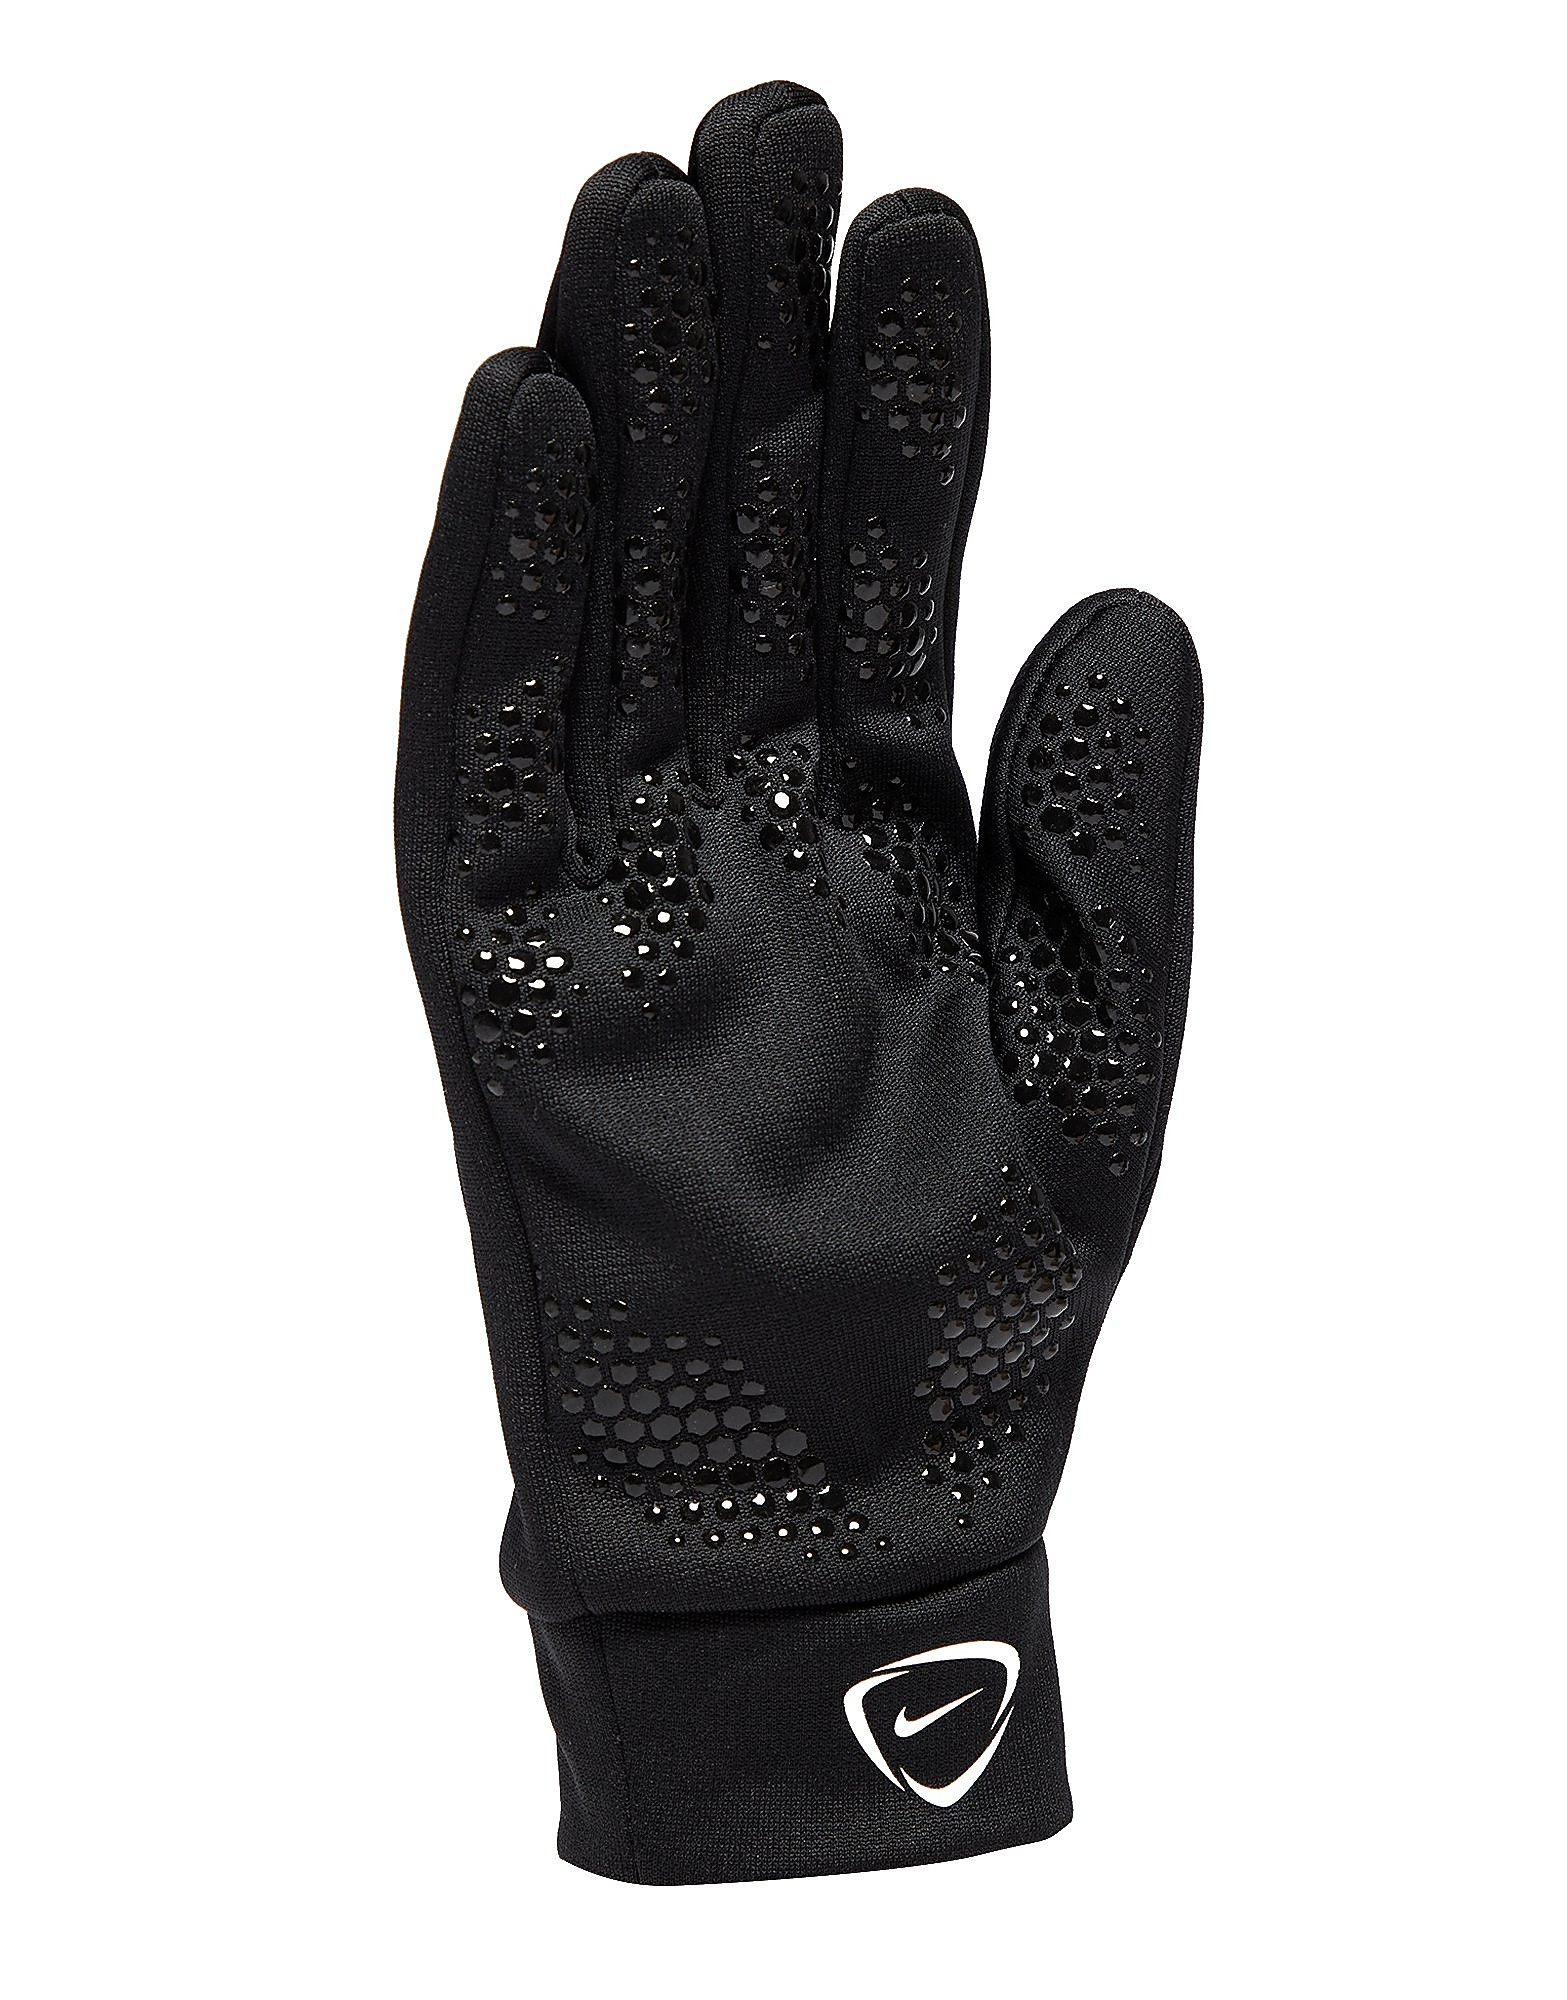 Nike Hyperwarm Field Player Gloves